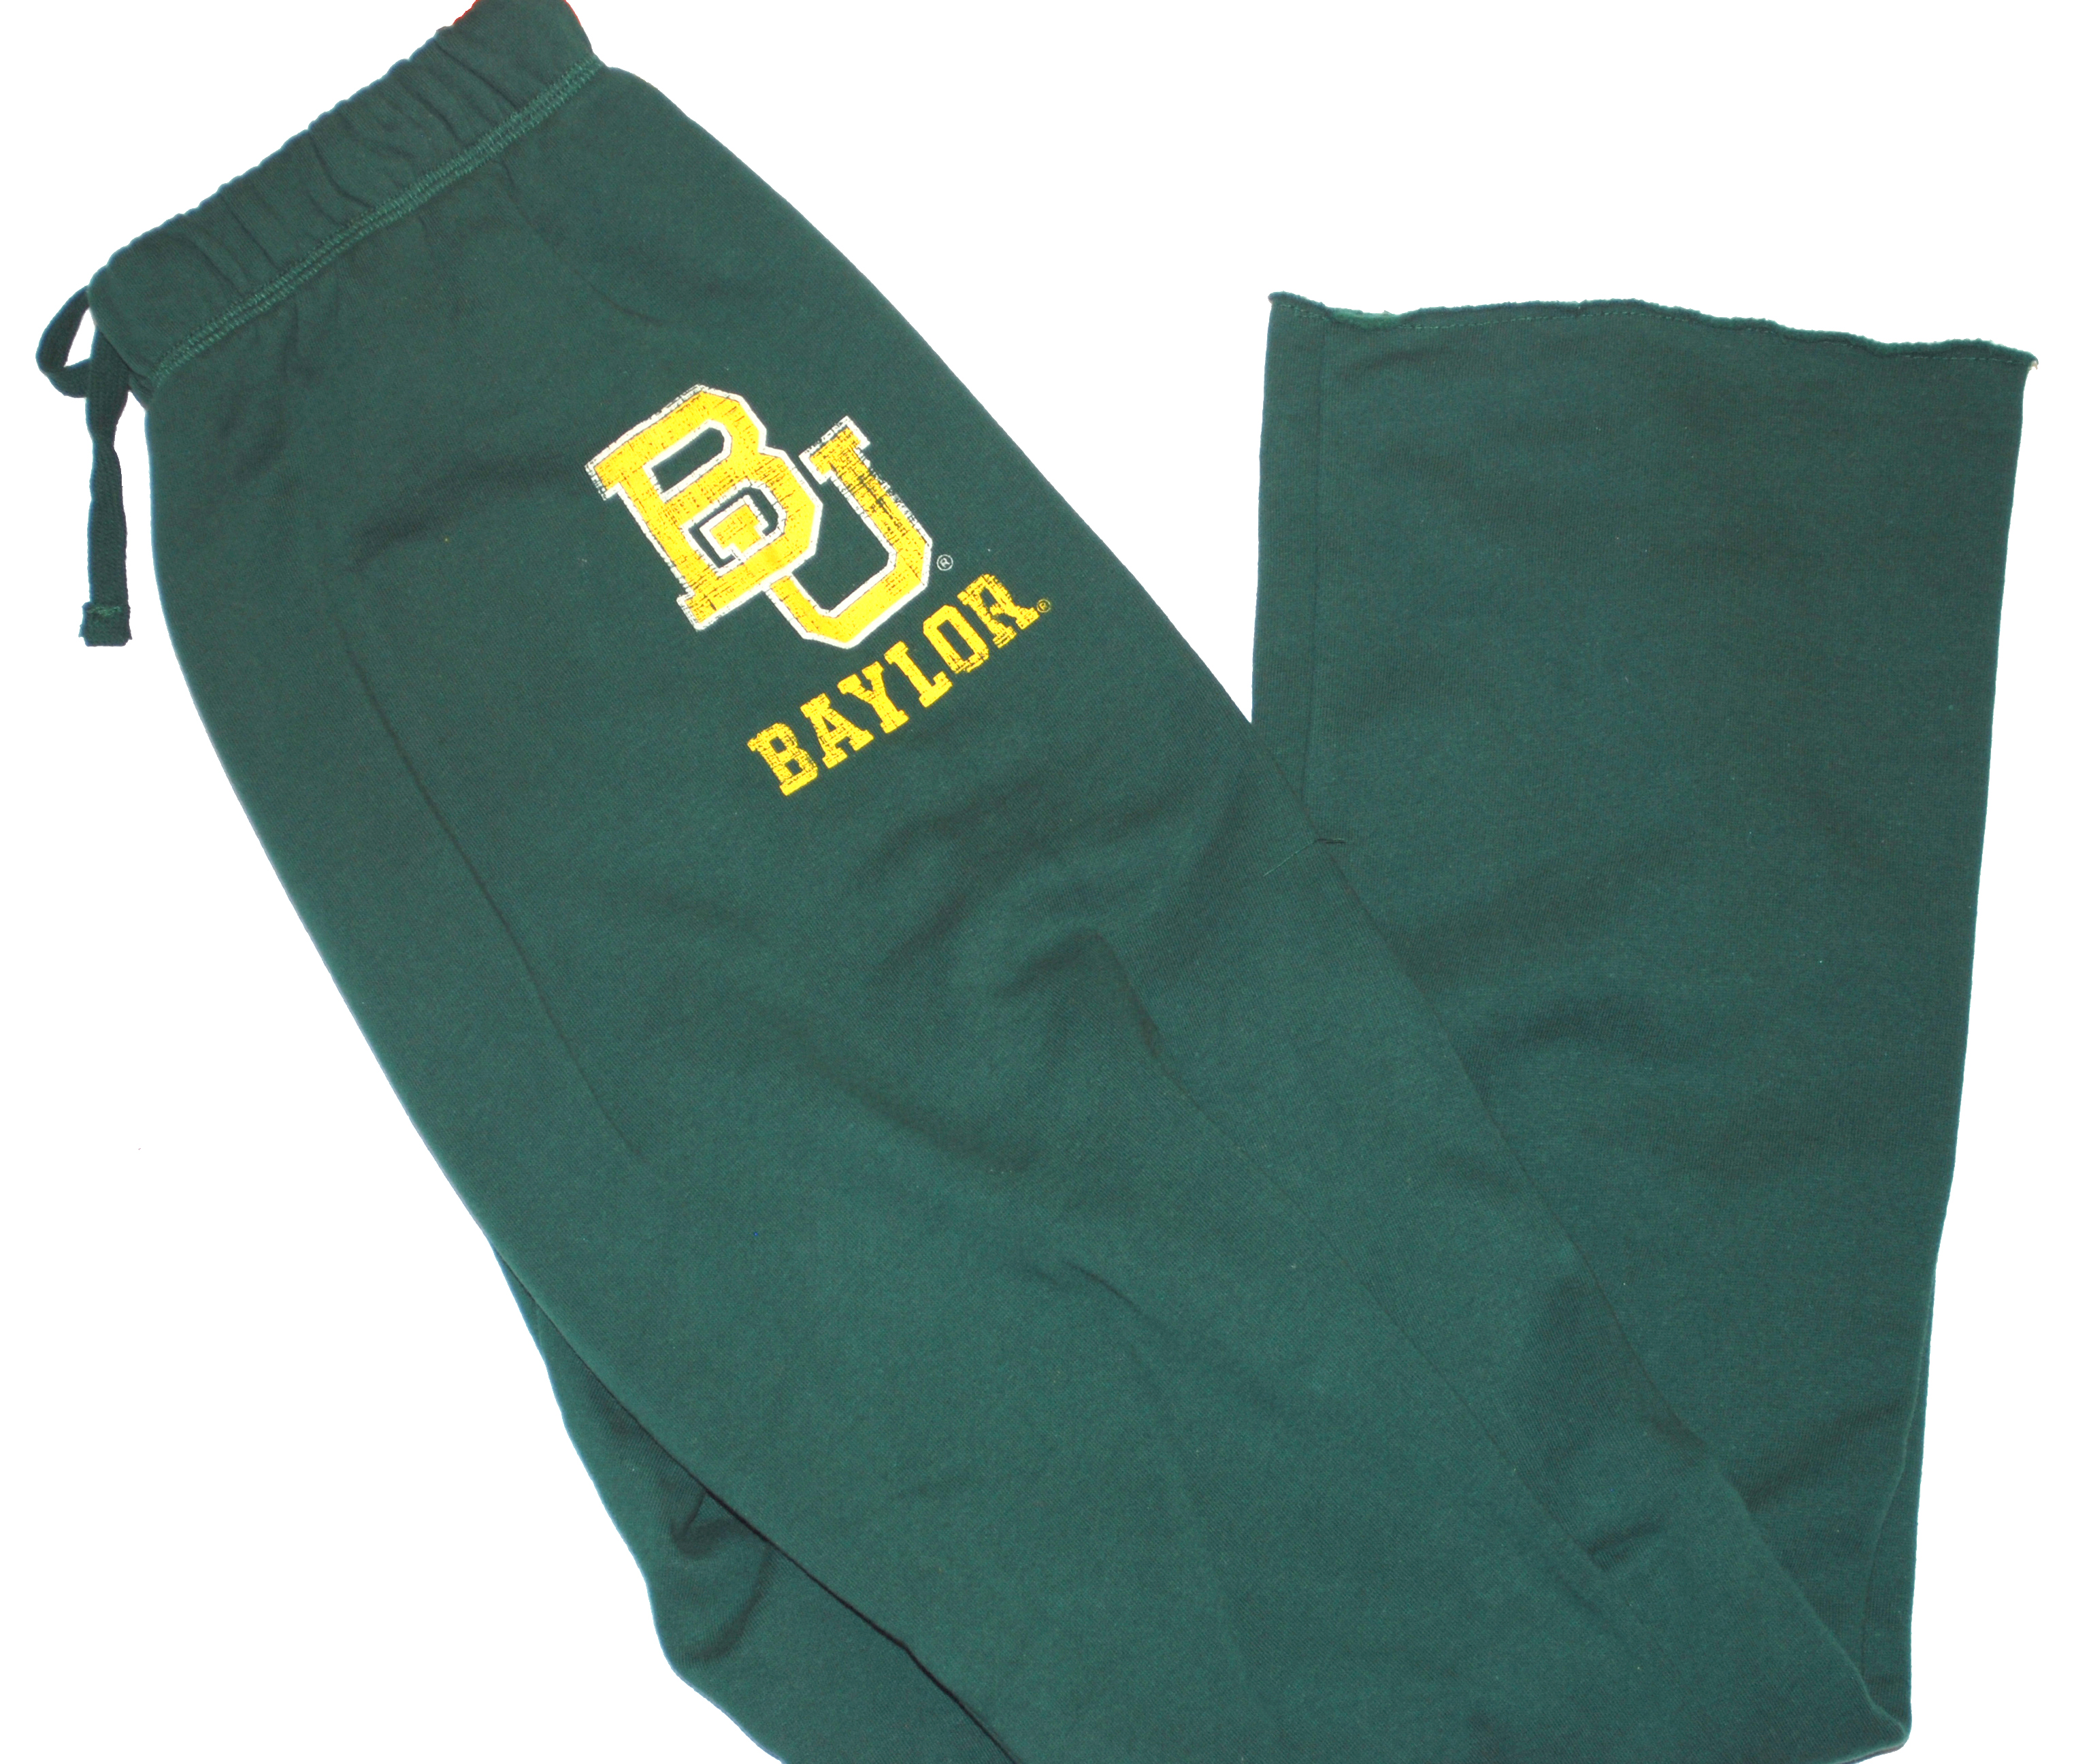 Colosseum Baylor Bears Colosseum Athletics Dark Green Womens Drawstring Sweatpants (M) at Sears.com